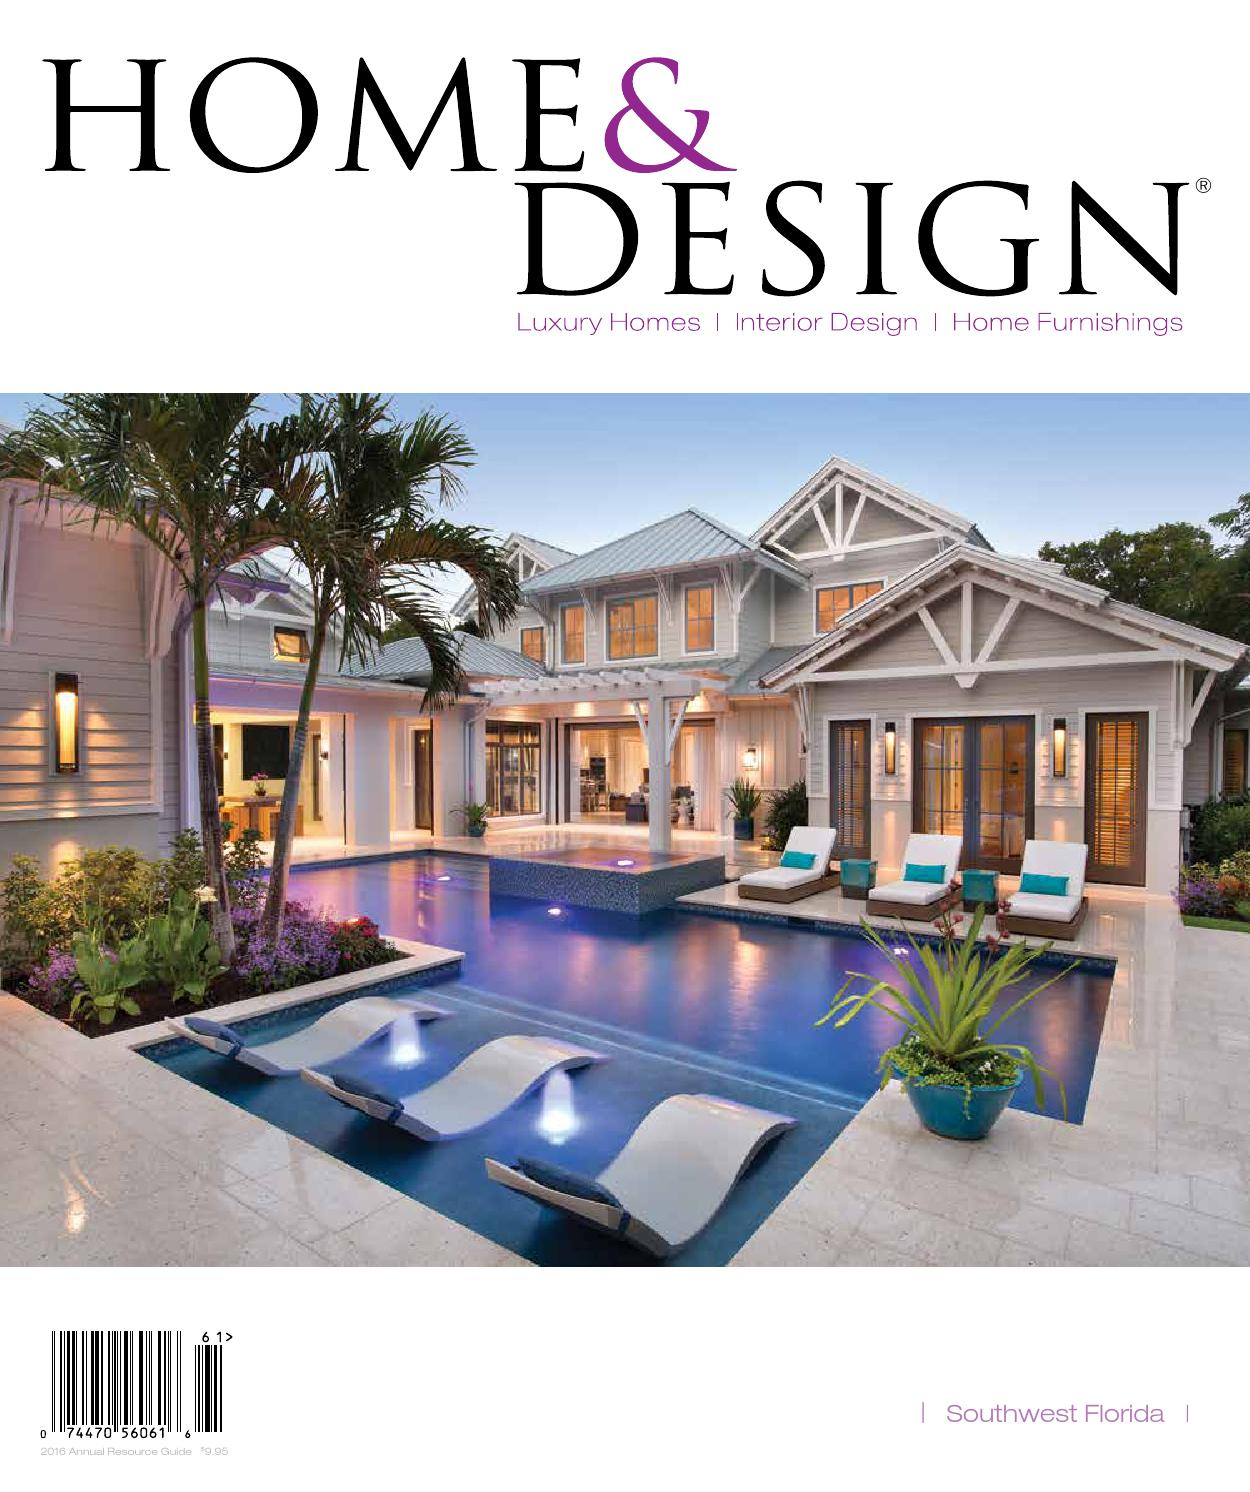 Home   Design Magazine   Annual Resource Guide 2016   Southwest Florida  Edition by Anthony Spano   issuu. Home   Design Magazine   Annual Resource Guide 2016   Southwest